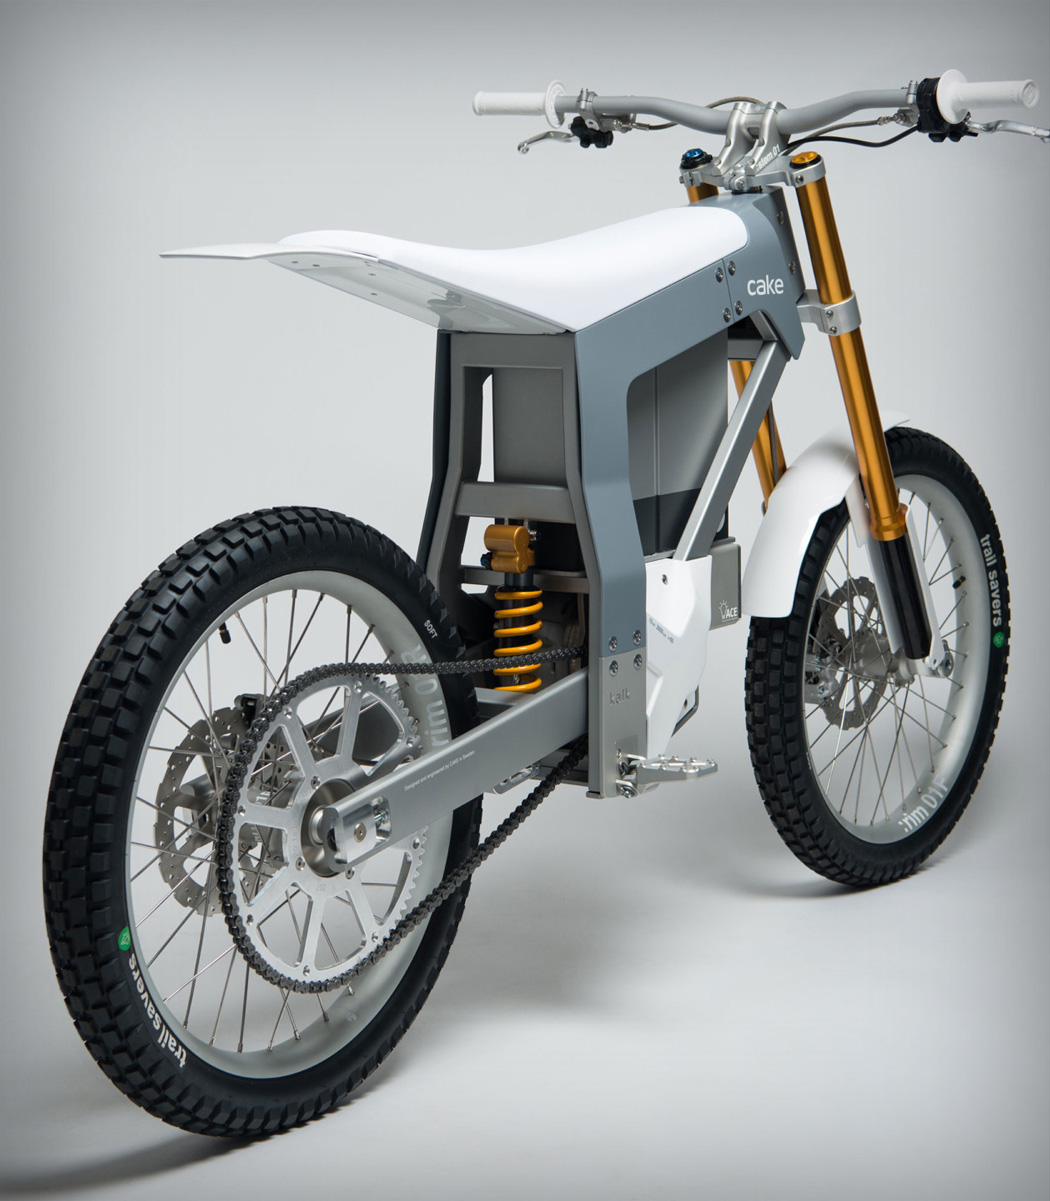 kalk_electric_dirtbike_03